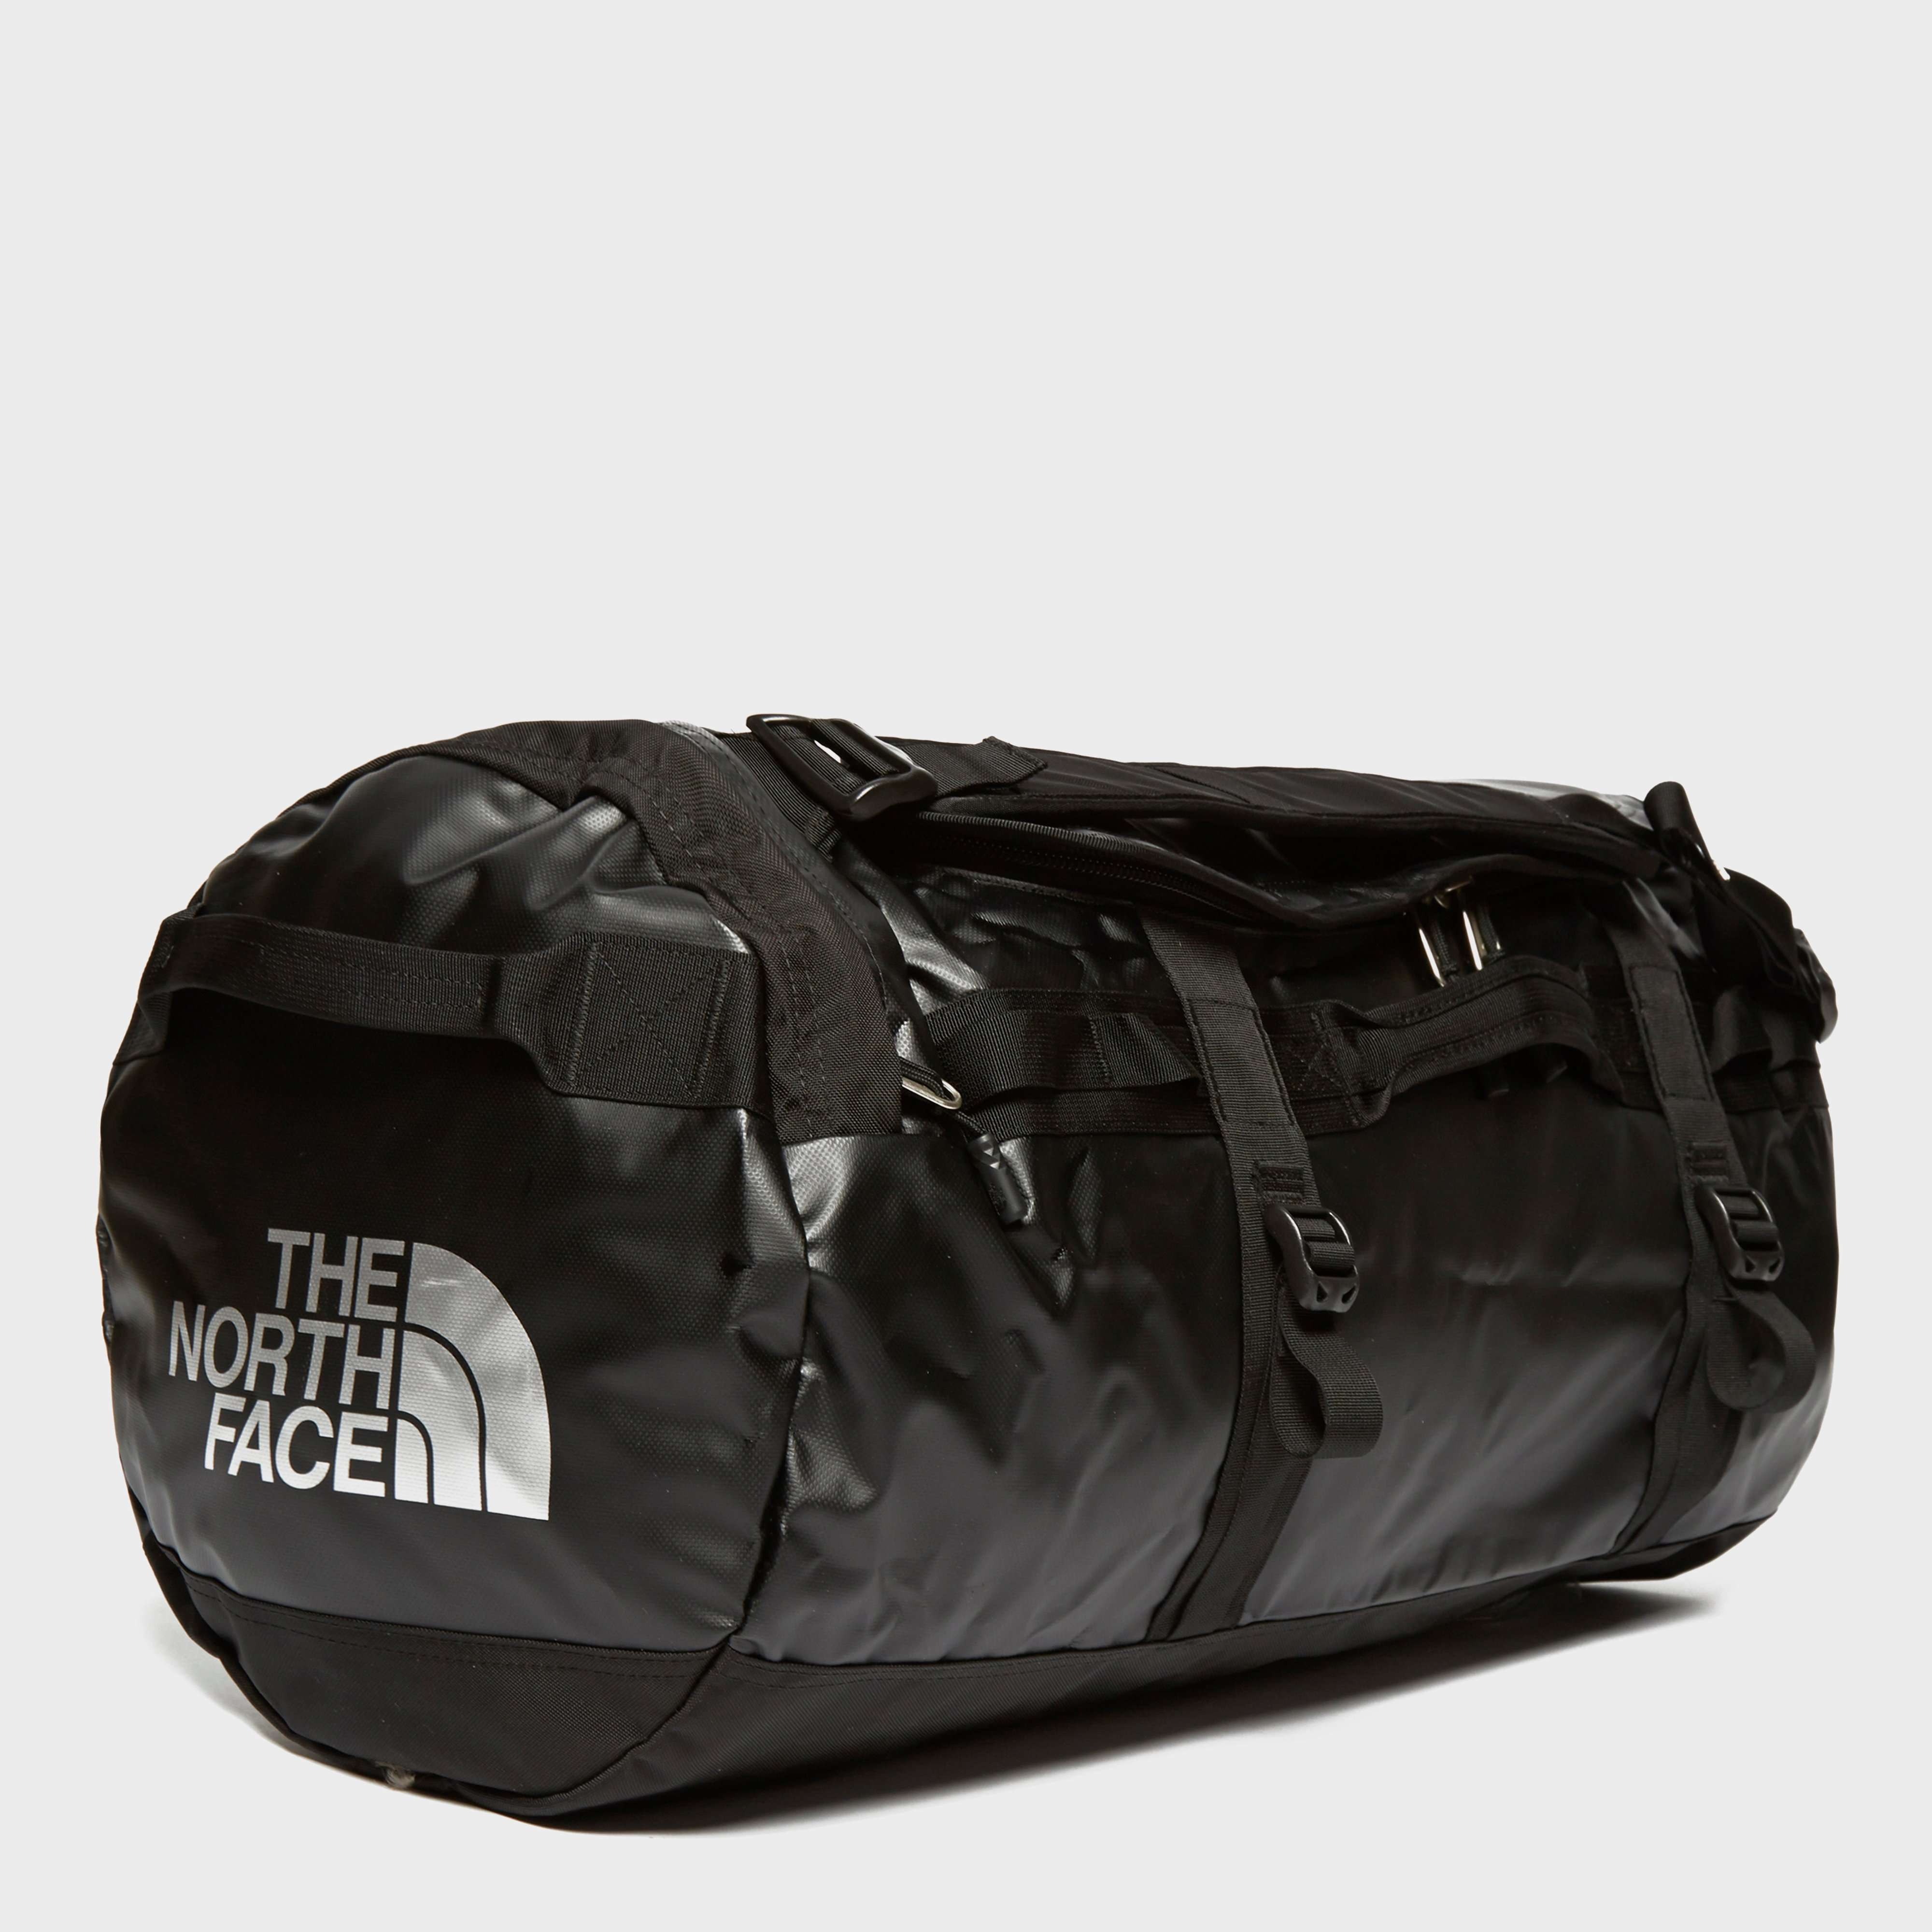 THE NORTH FACE Basecamp Duffel Bag (X-Large)